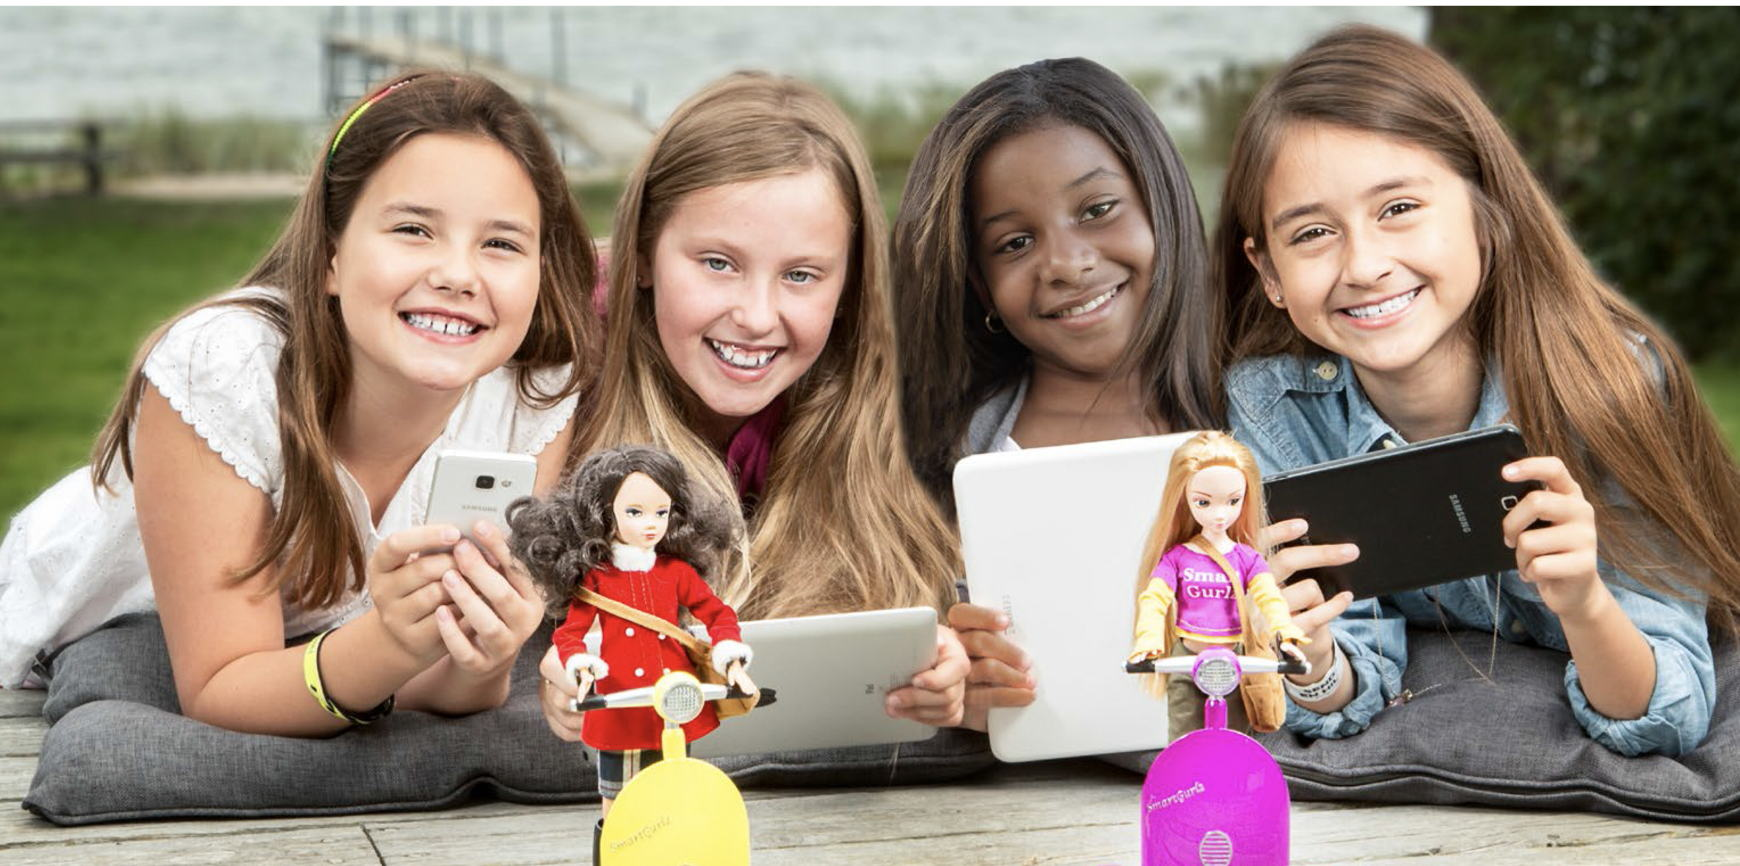 Invest in SmartGurlz : Invest in a Shark Tank company! Helping kids